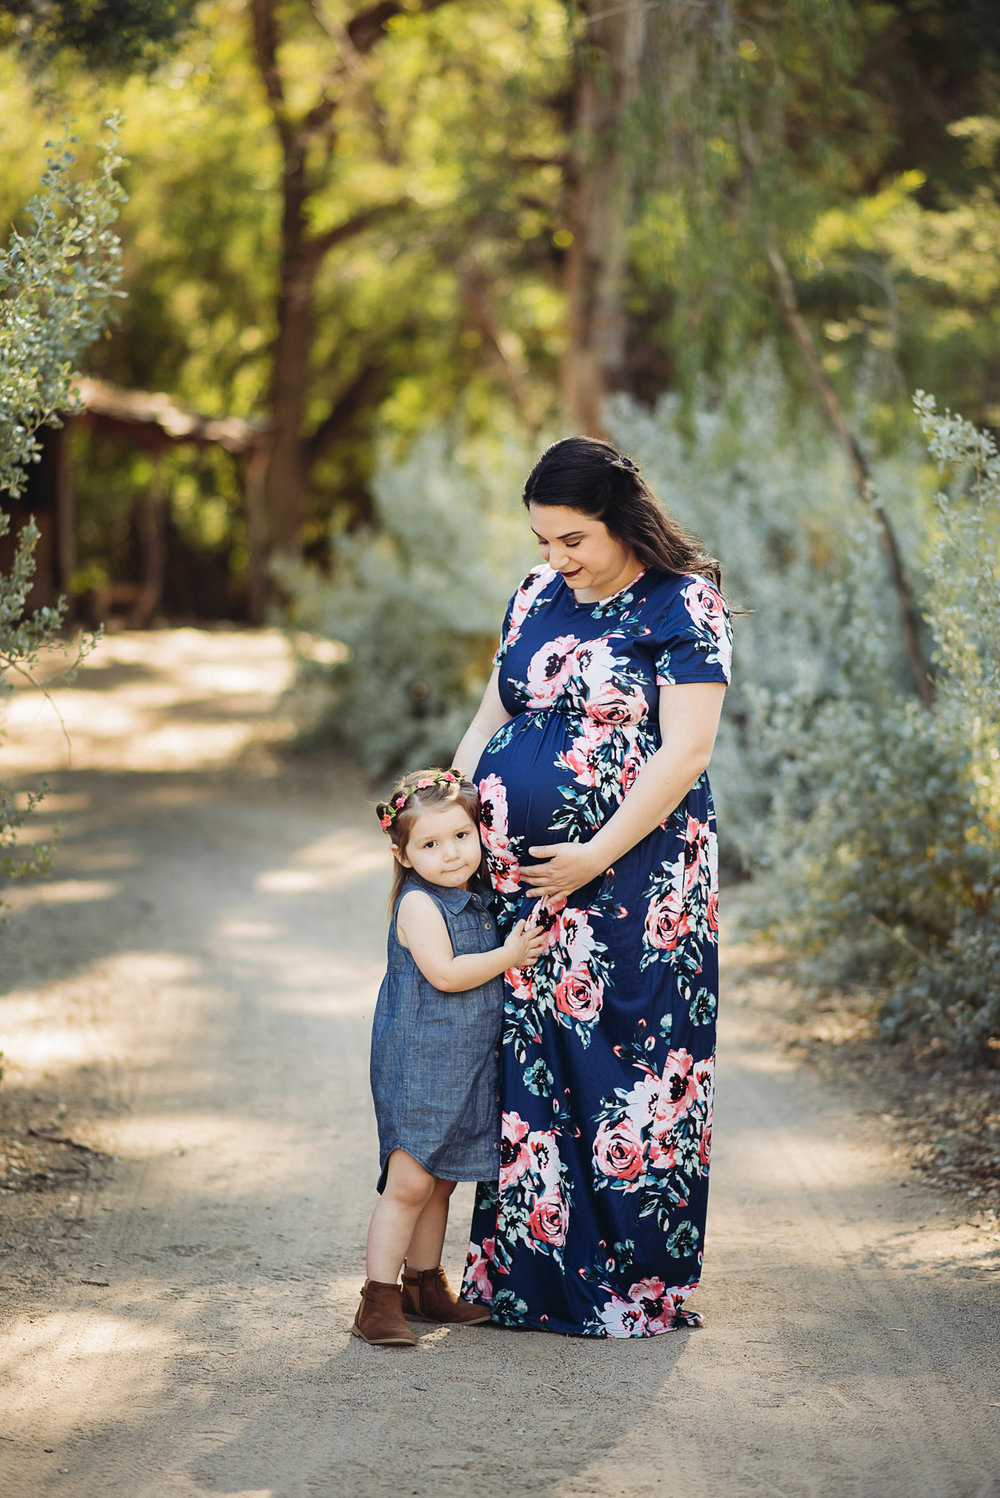 boyce-thompson-arboretum-maternity-photos-elemental-fotos-andrew-ybanez.jpg